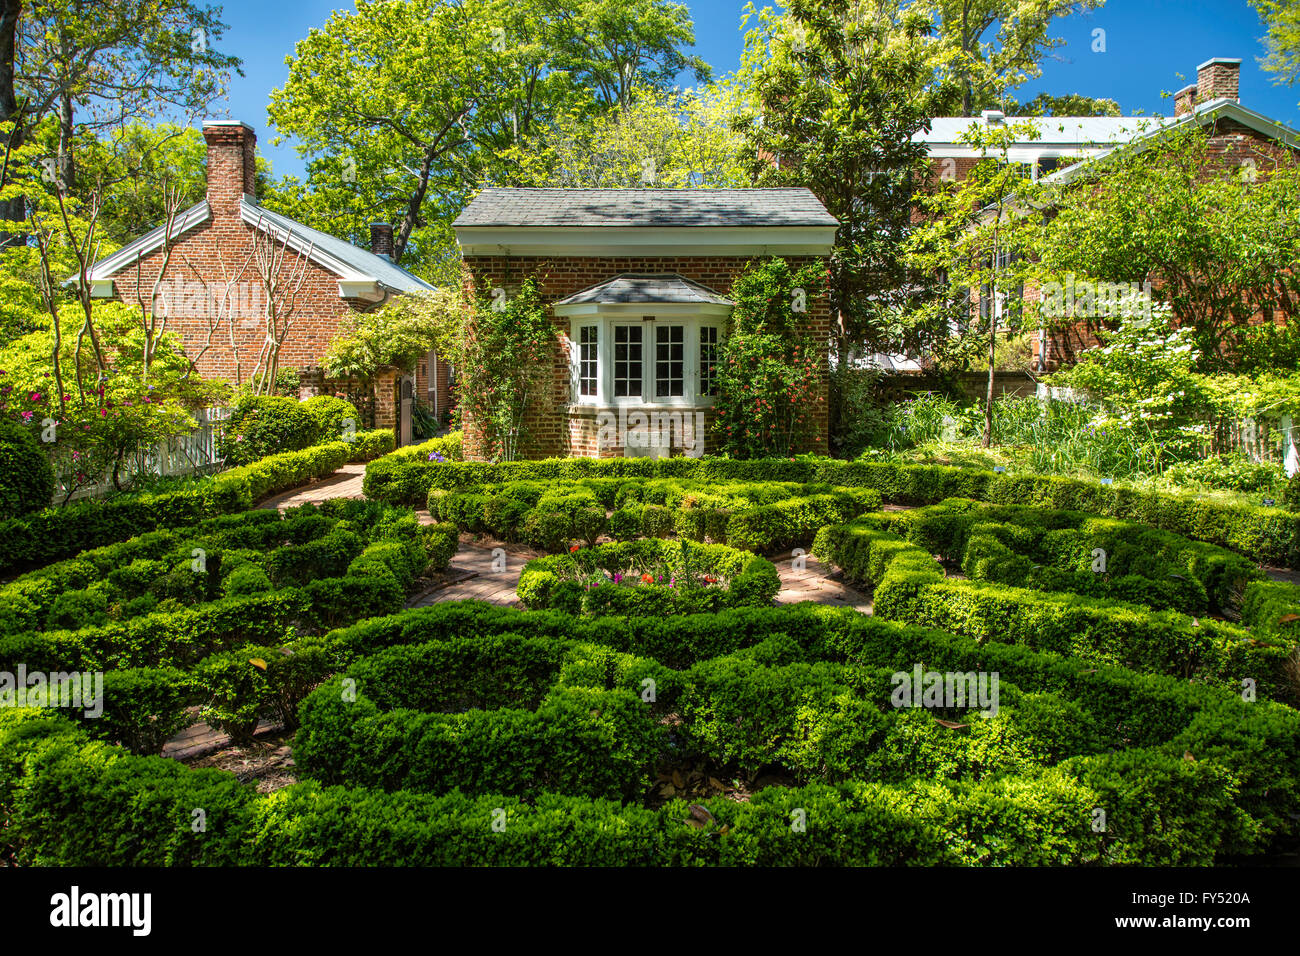 Founders Memorial Garden And House On University Of Georgia Campus Stock Photo Royalty Free